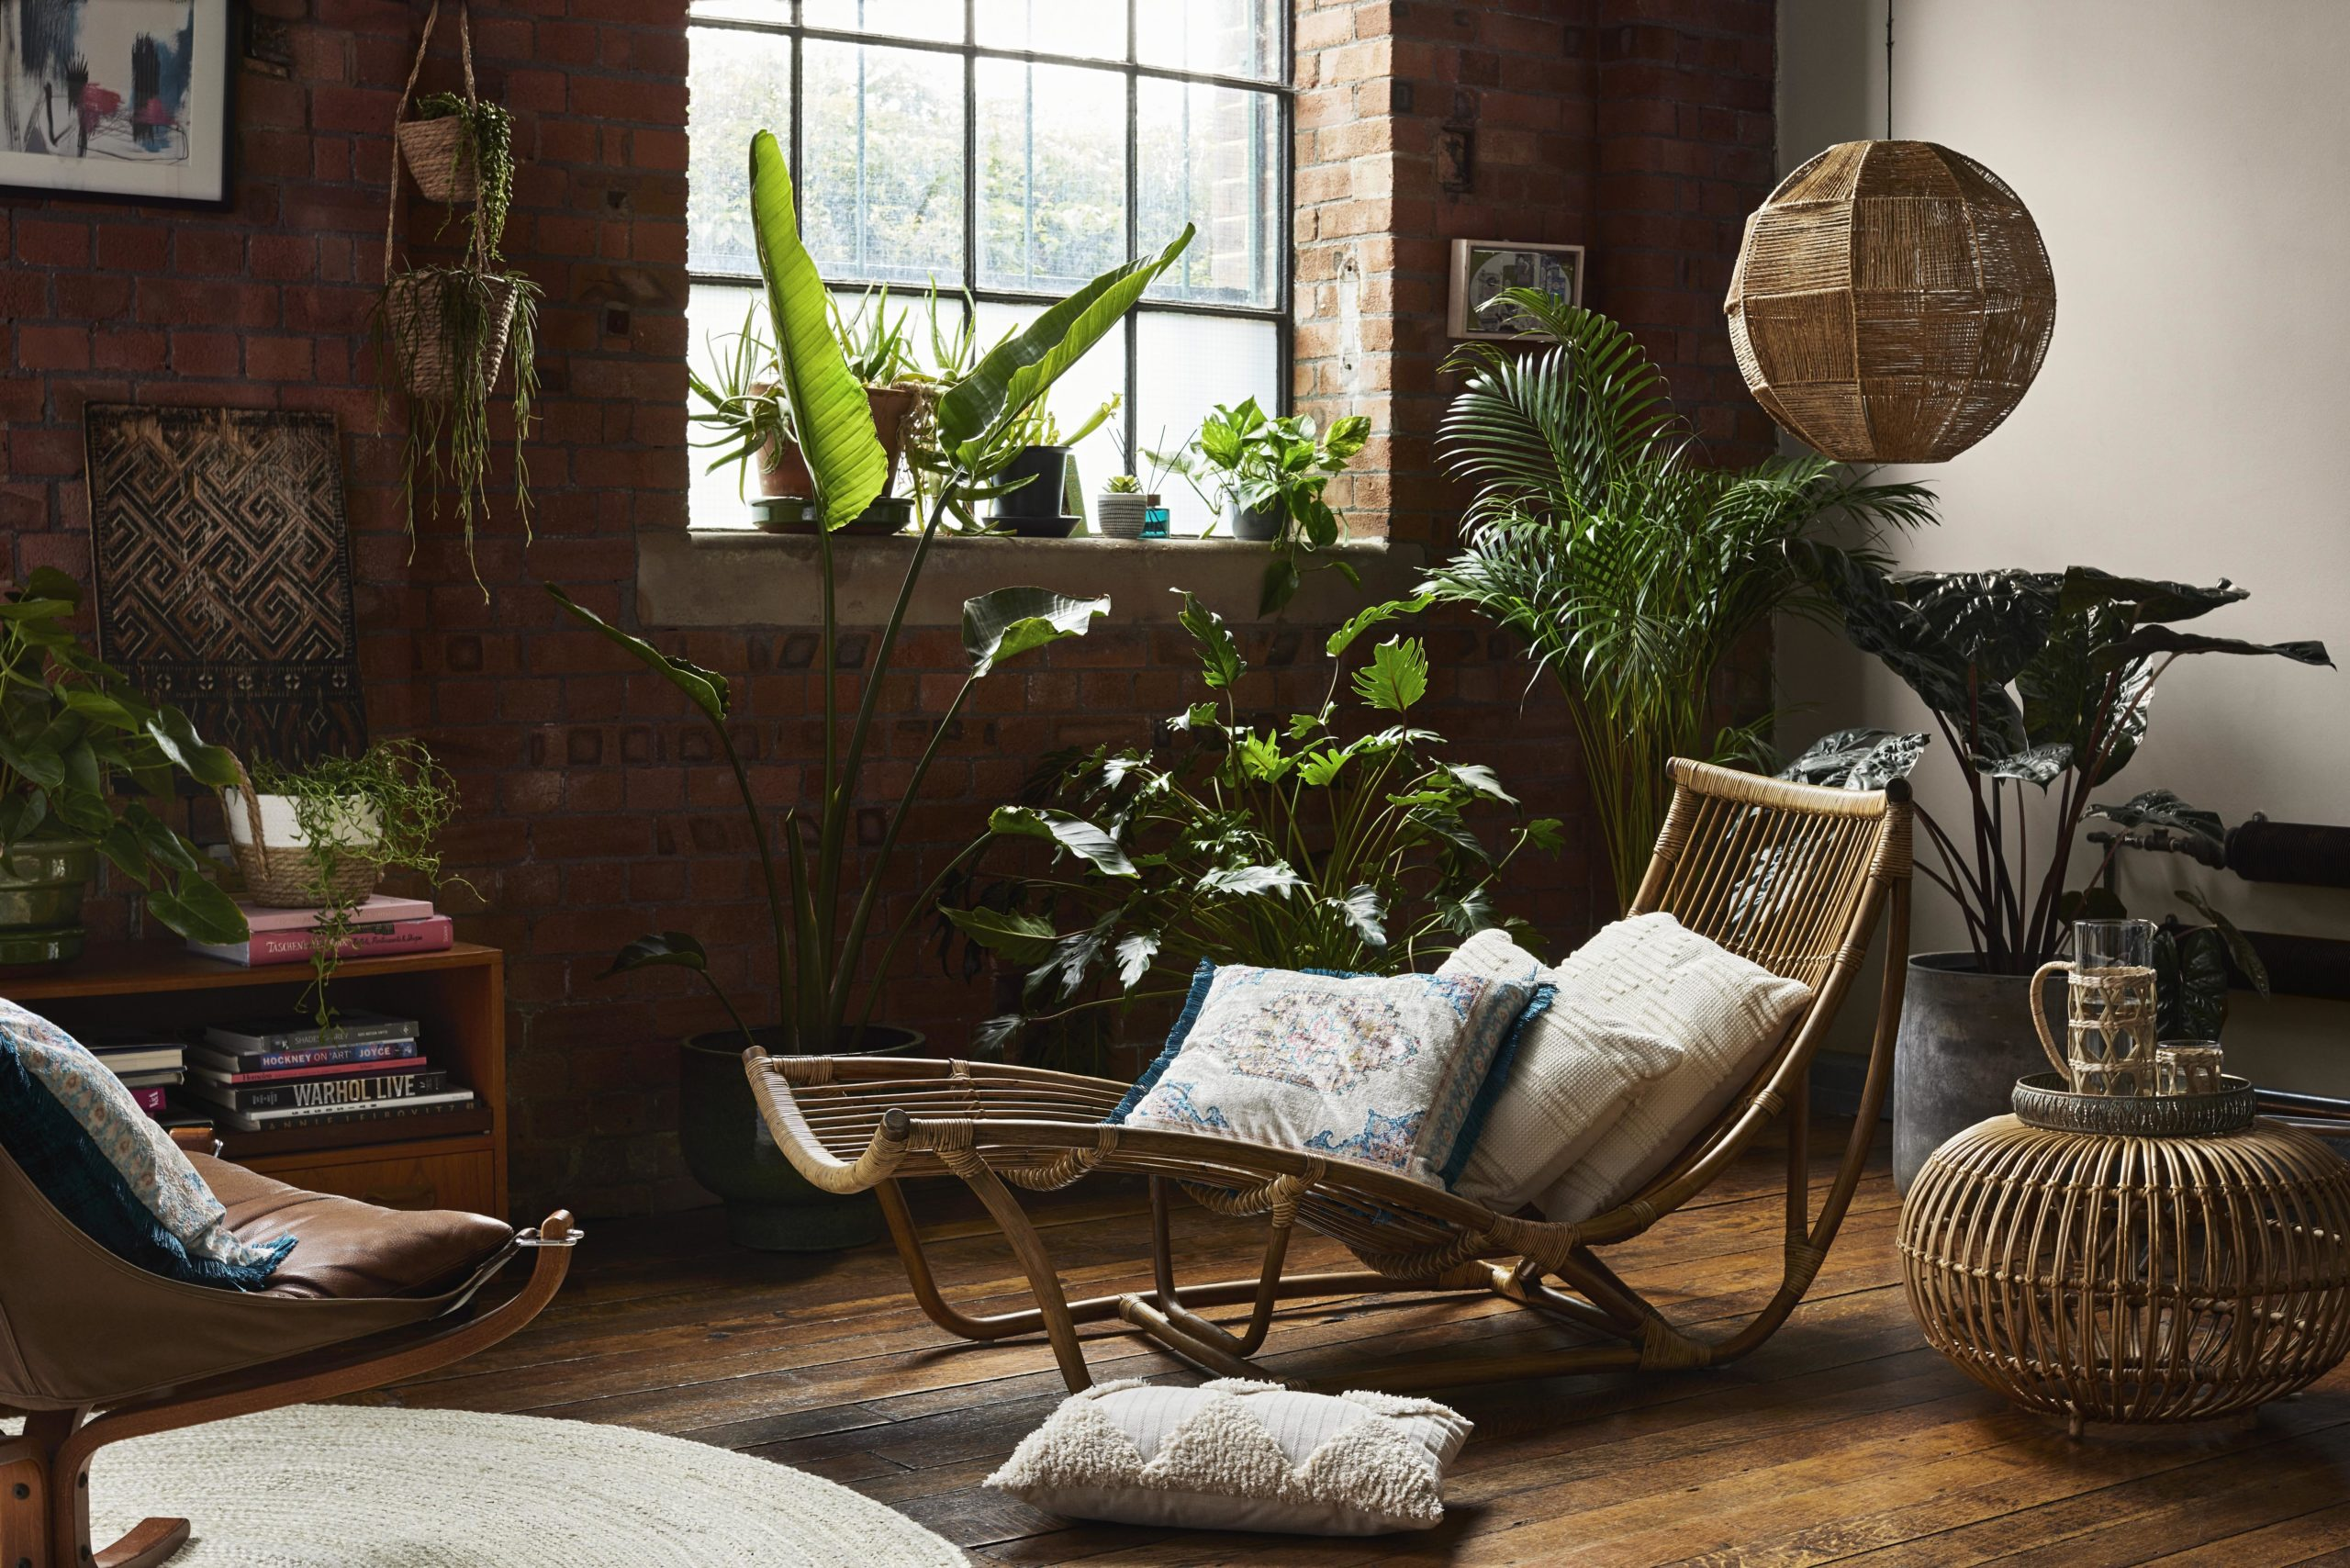 Home Trend: Down To Earth